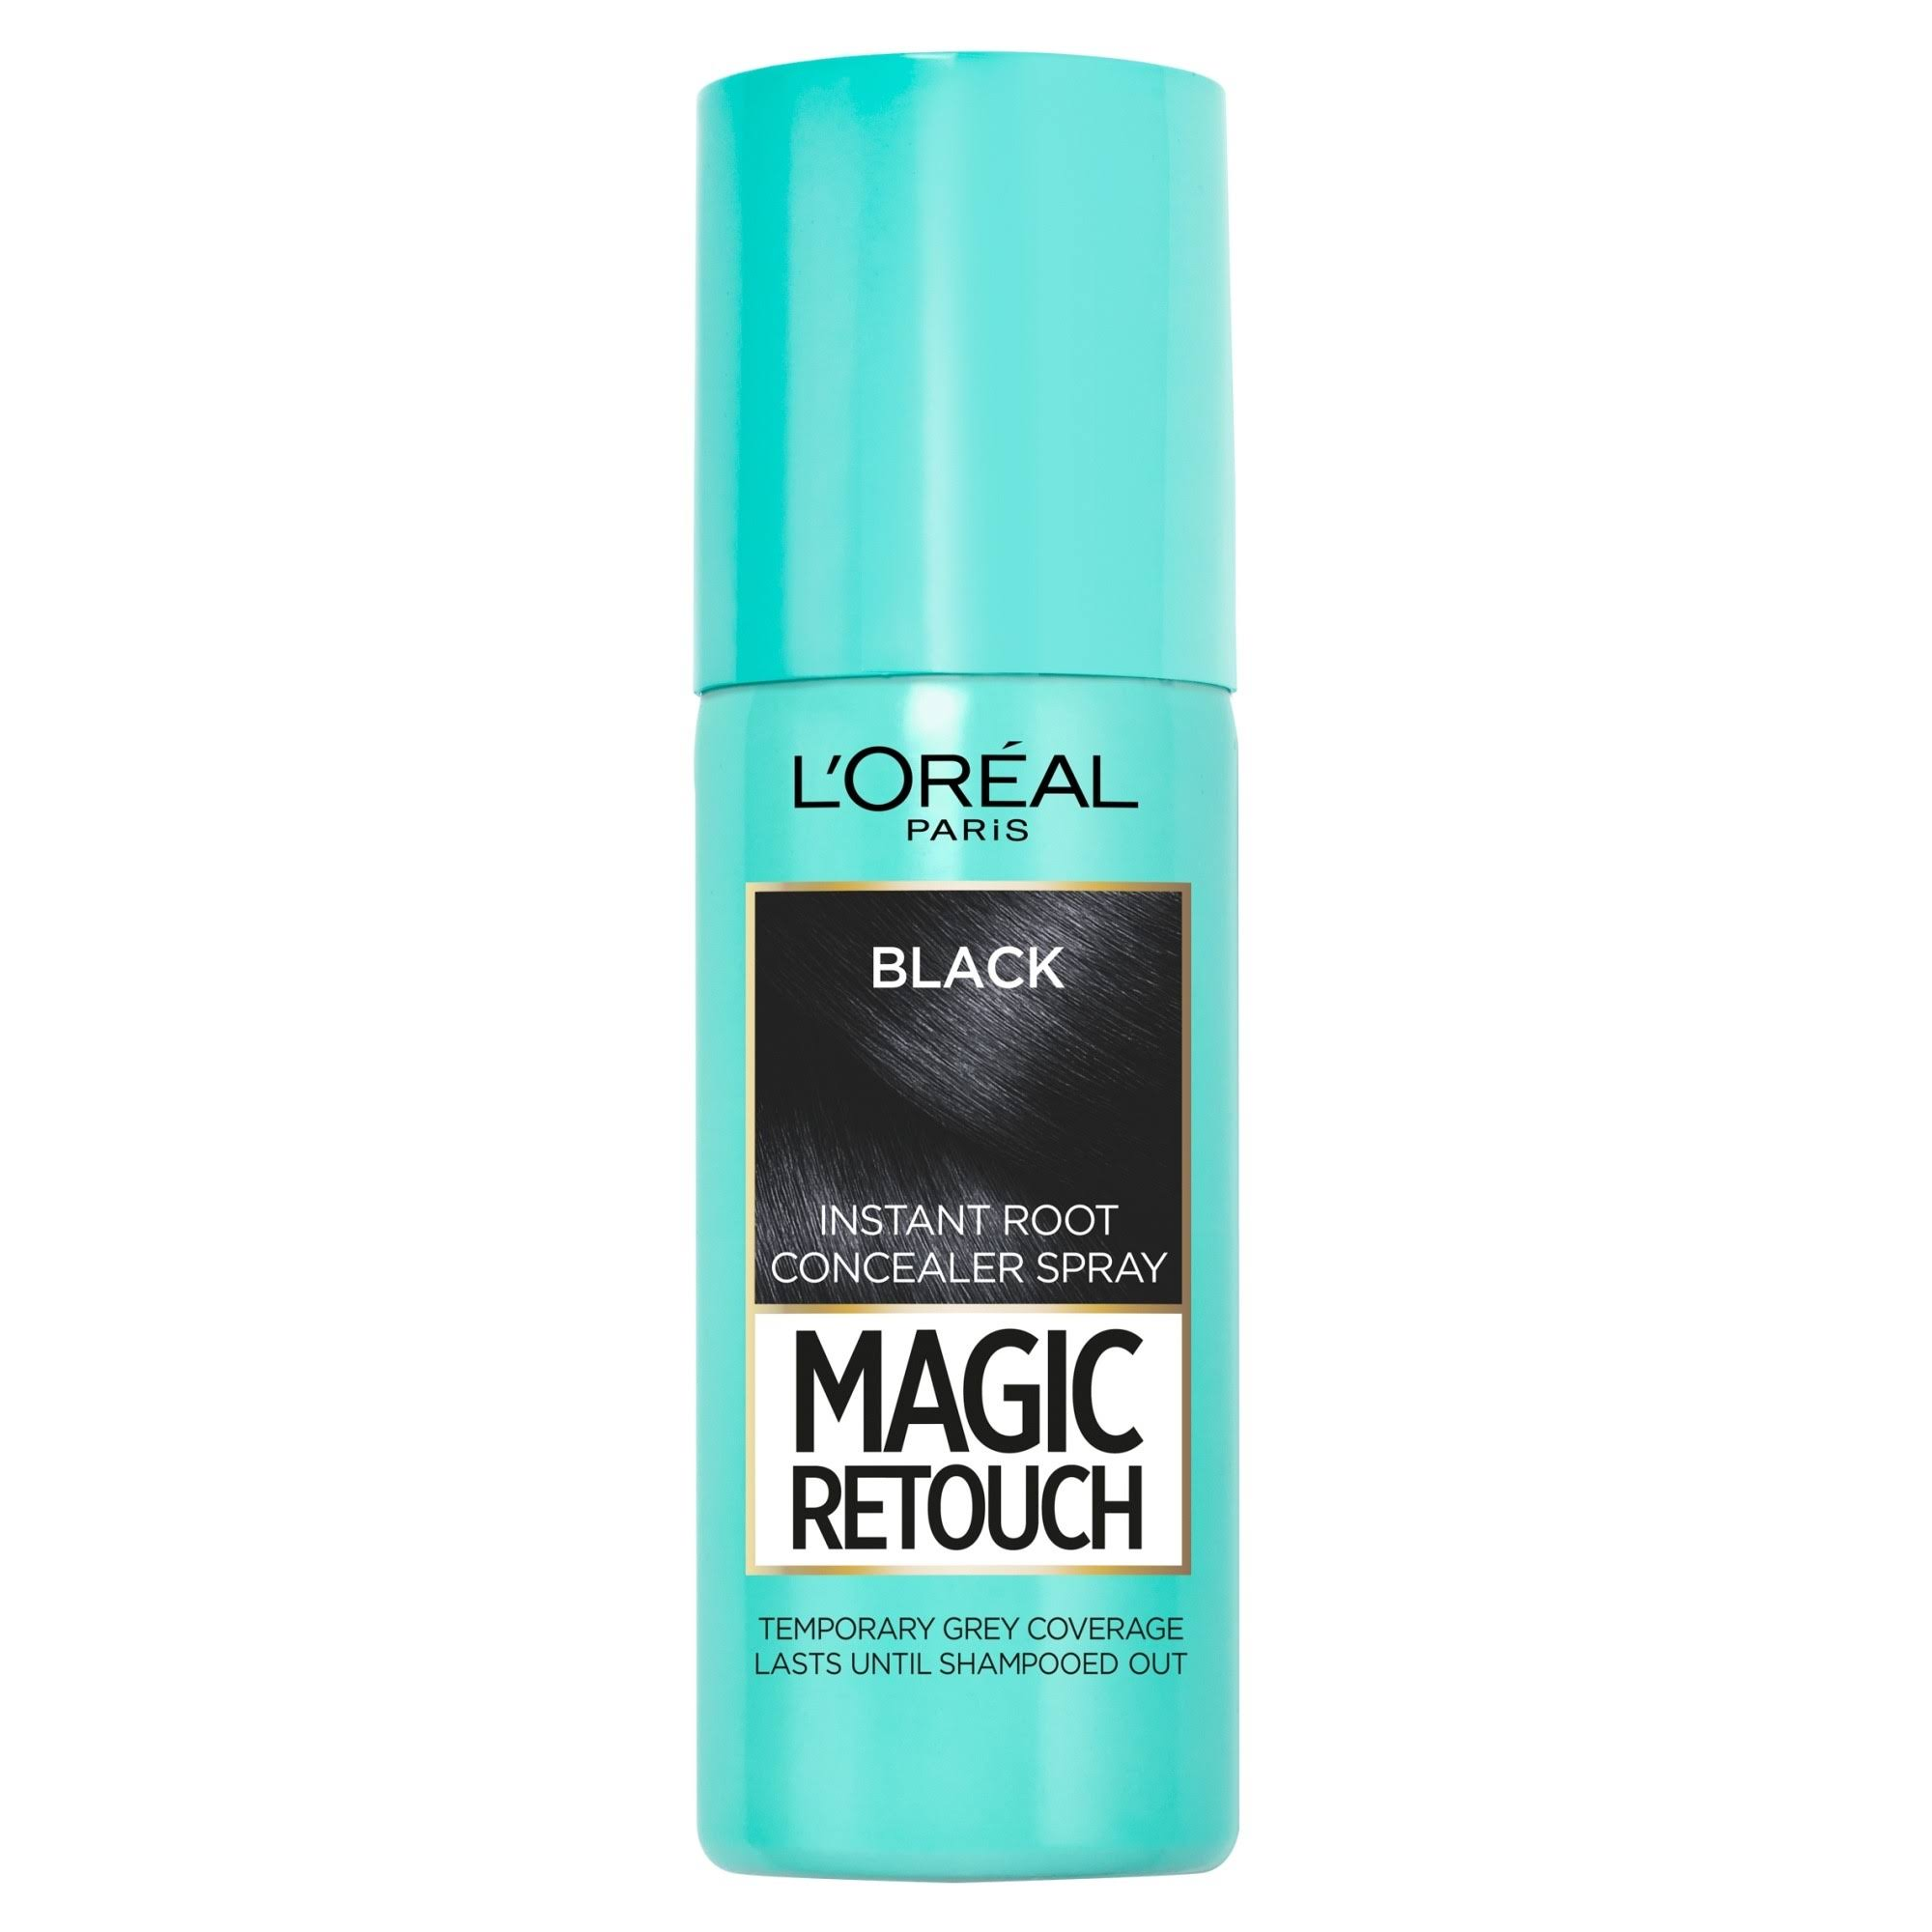 L'Oreal Magic Retouch Temporary Instant Grey Root Concealer Spray - Black, 75ml